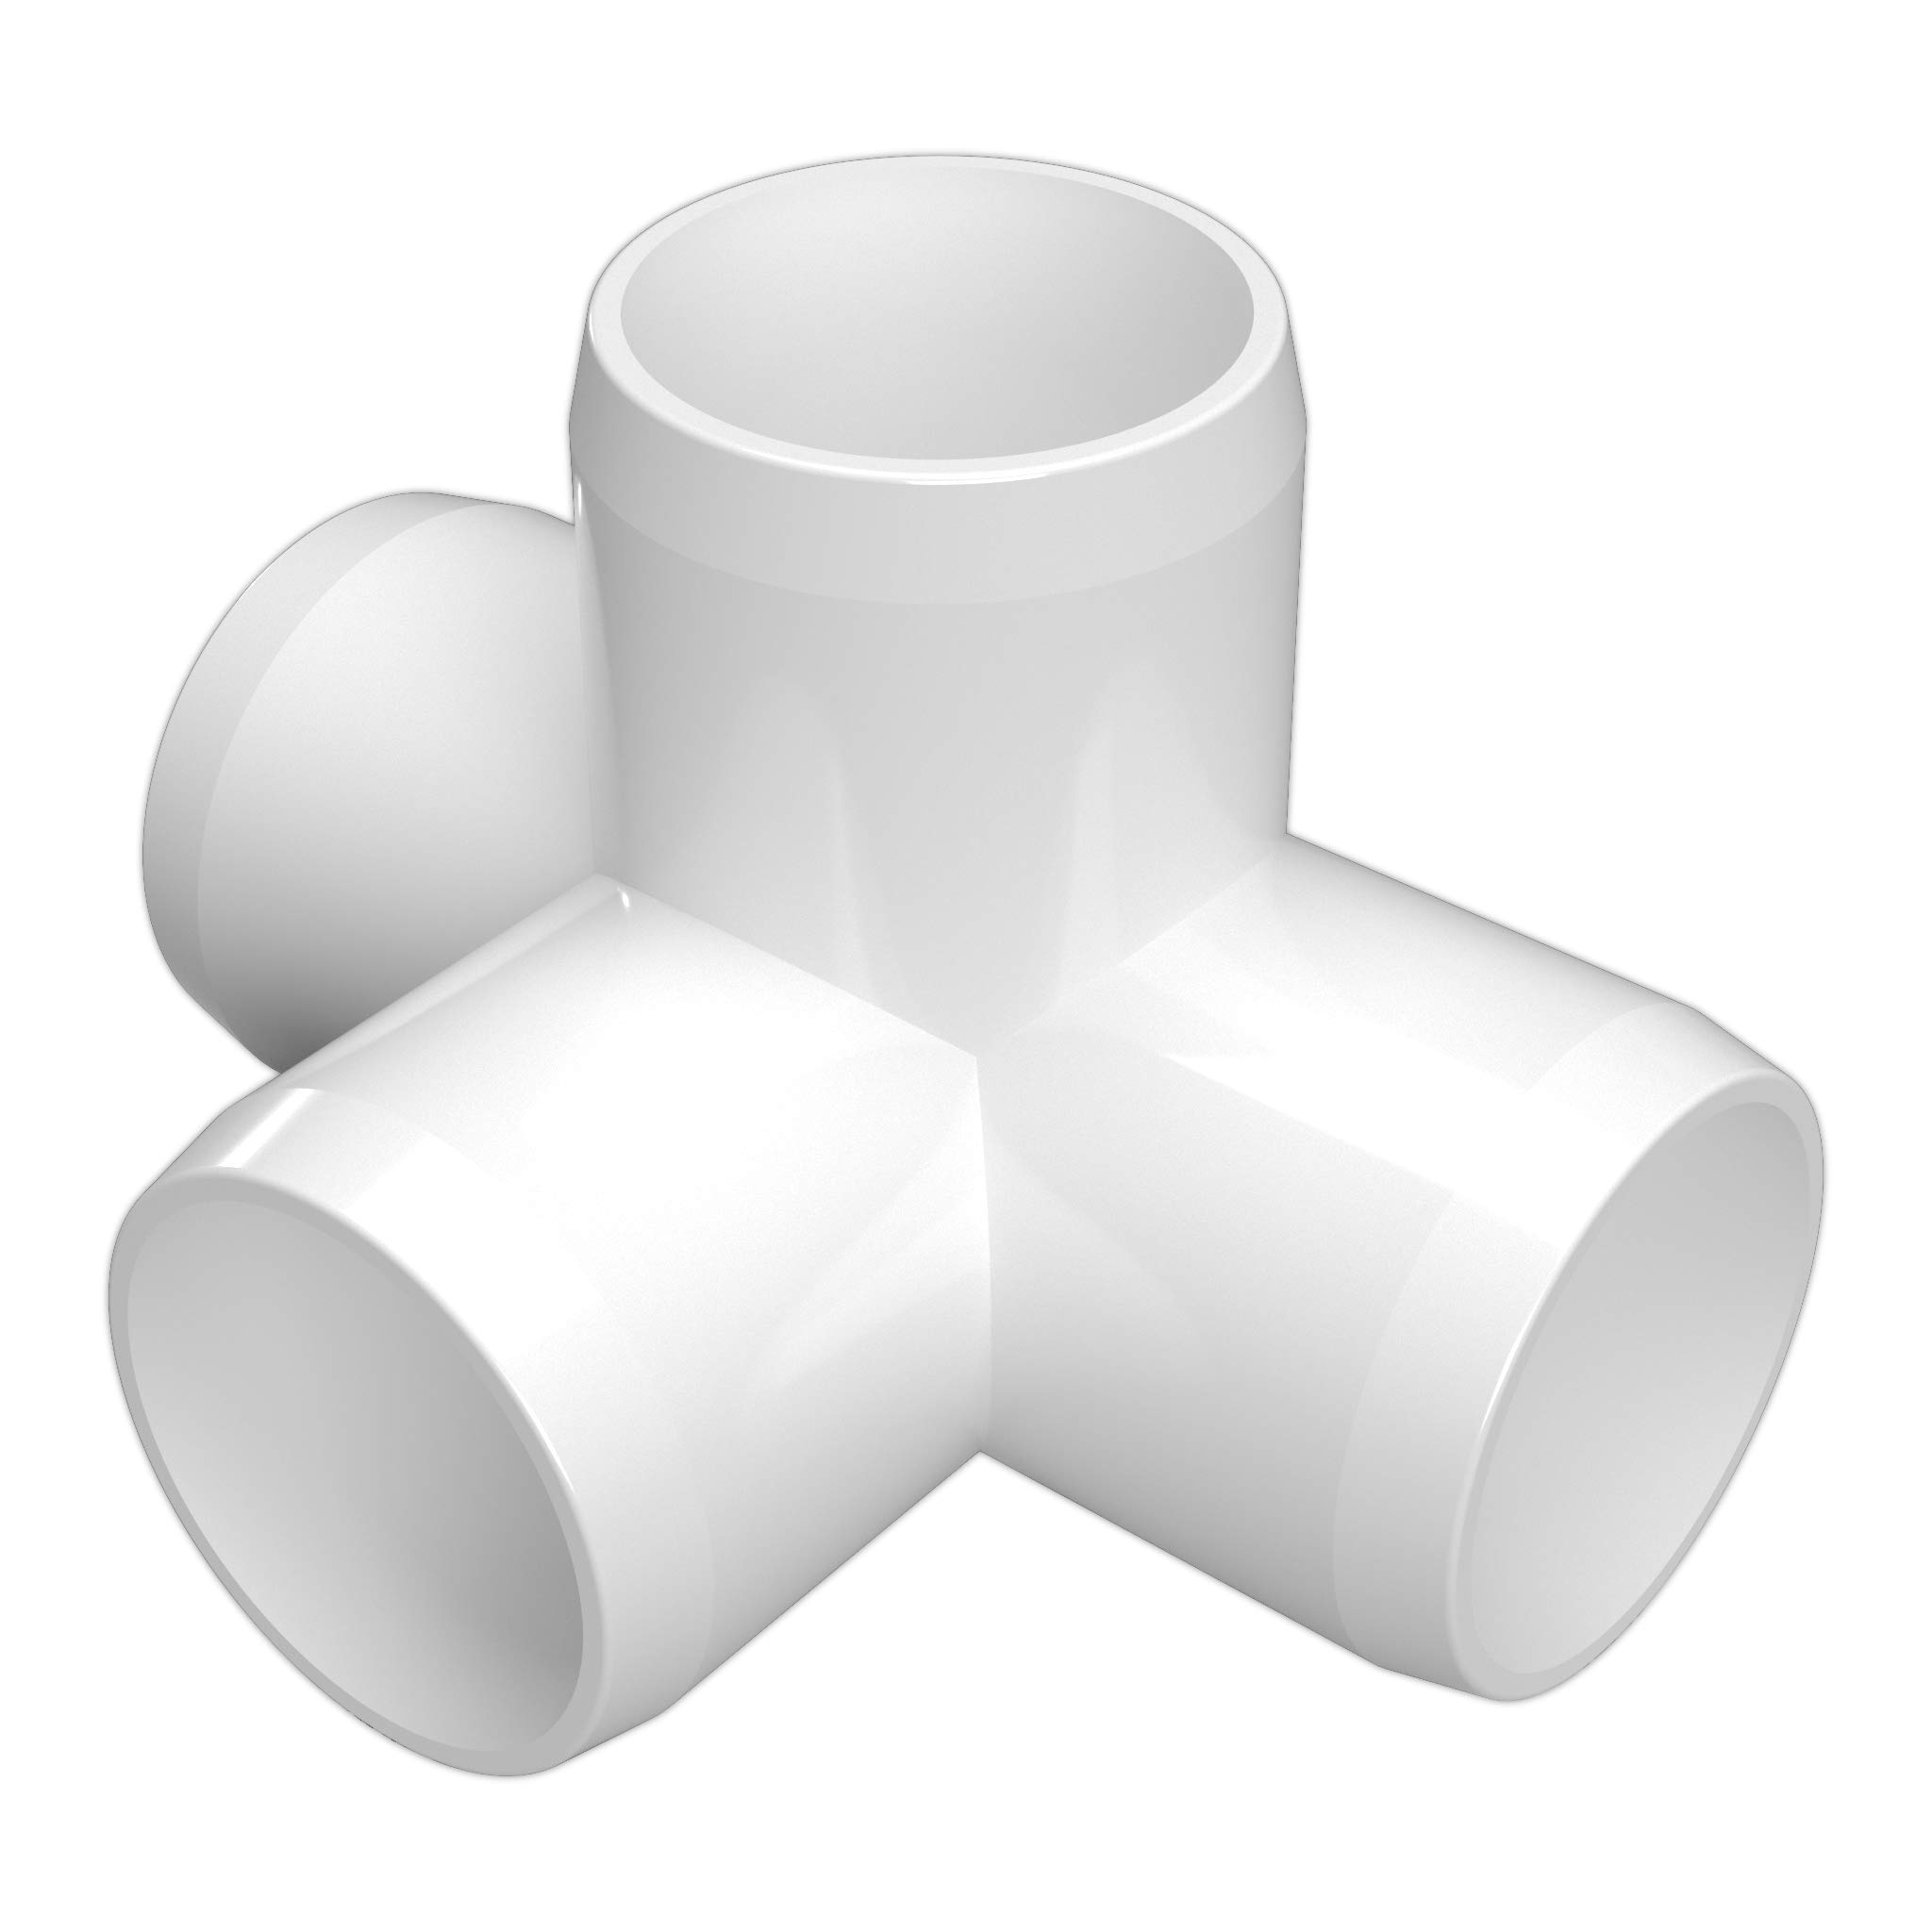 FORMUFIT F1144WT-WH-4 4-Way Tee PVC Fitting, Furniture Grade, 1-1/4'' Size, White (Pack of 4)